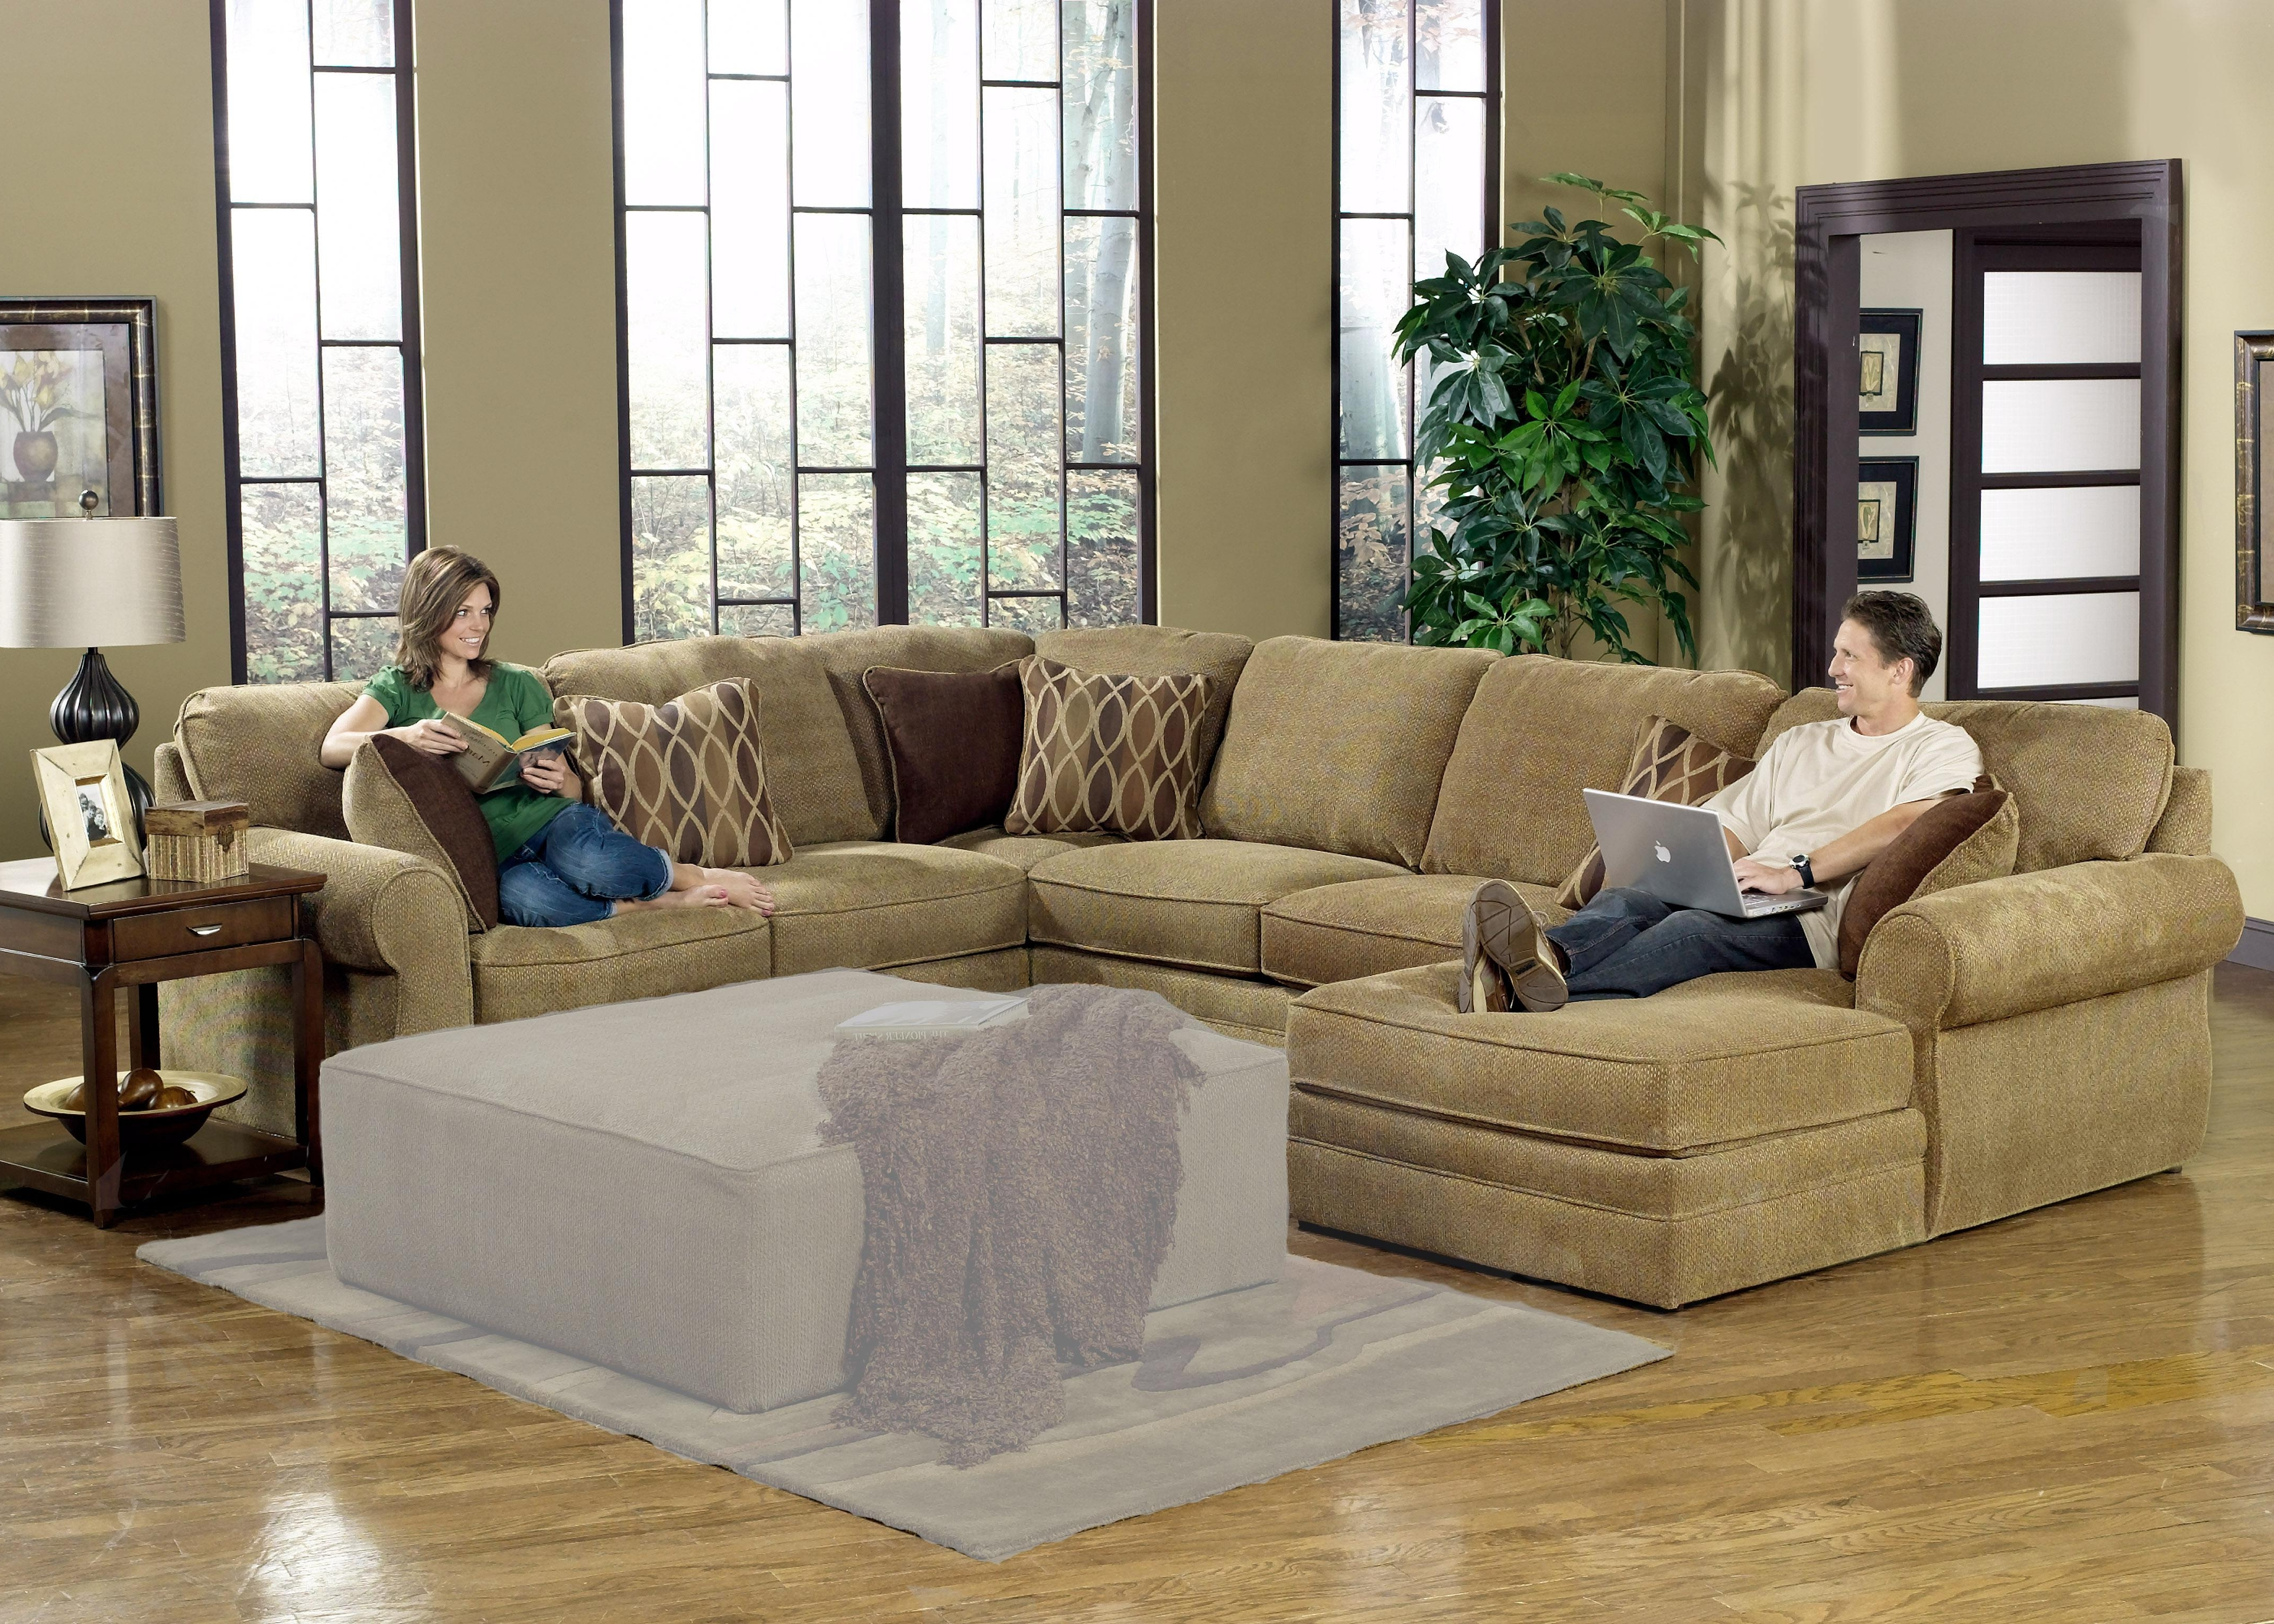 Most Popular Ontario Sectional Sofas In Fascinating U Shaped Sectional Sofas 123 Sofa Sectionals Canada (View 6 of 20)